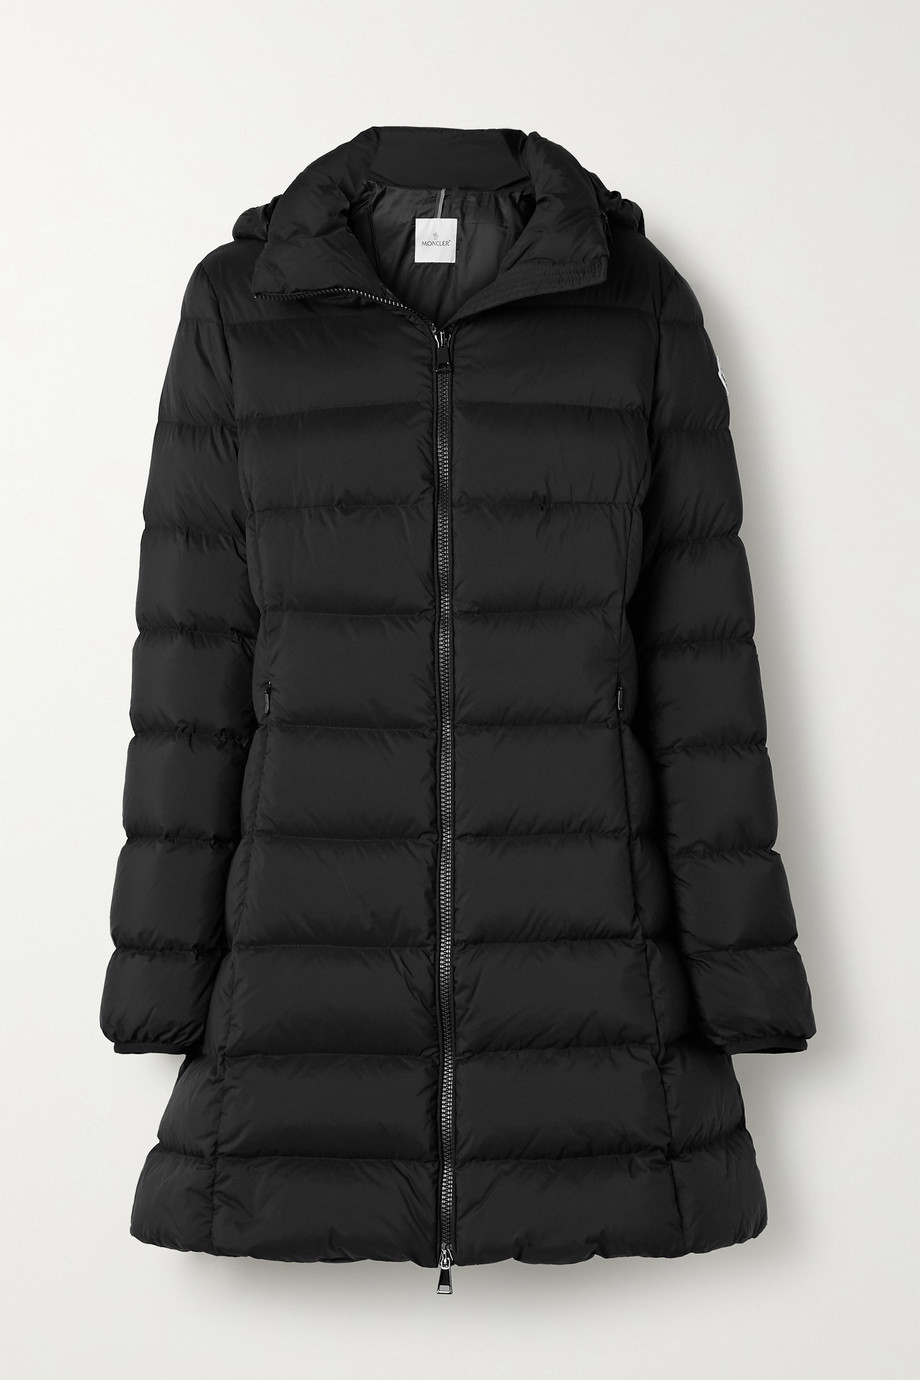 Moncler Gie hooded quilted shell down jacket